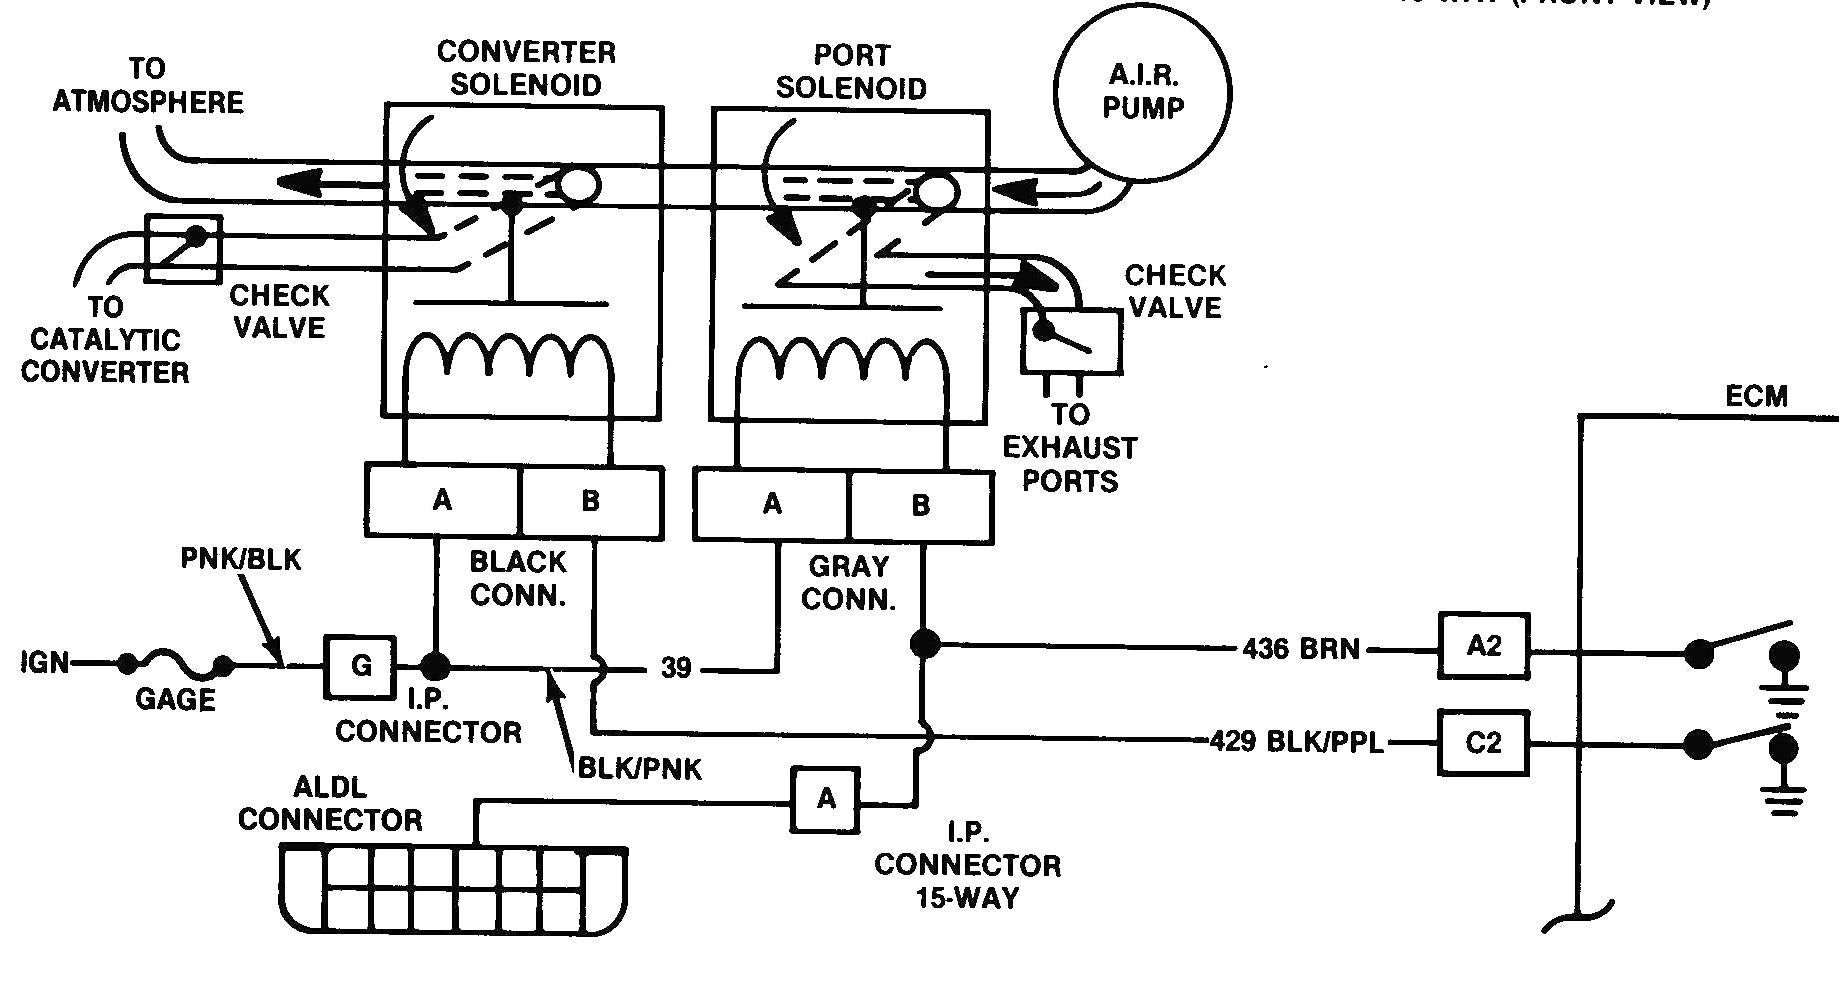 solenoid valve wiring schematic Collection-asco solenoid valve wiring diagram Gas solenoid Valve Wiring Diagram Elegant Honeywell Gas Valve Troubleshooting 8-f